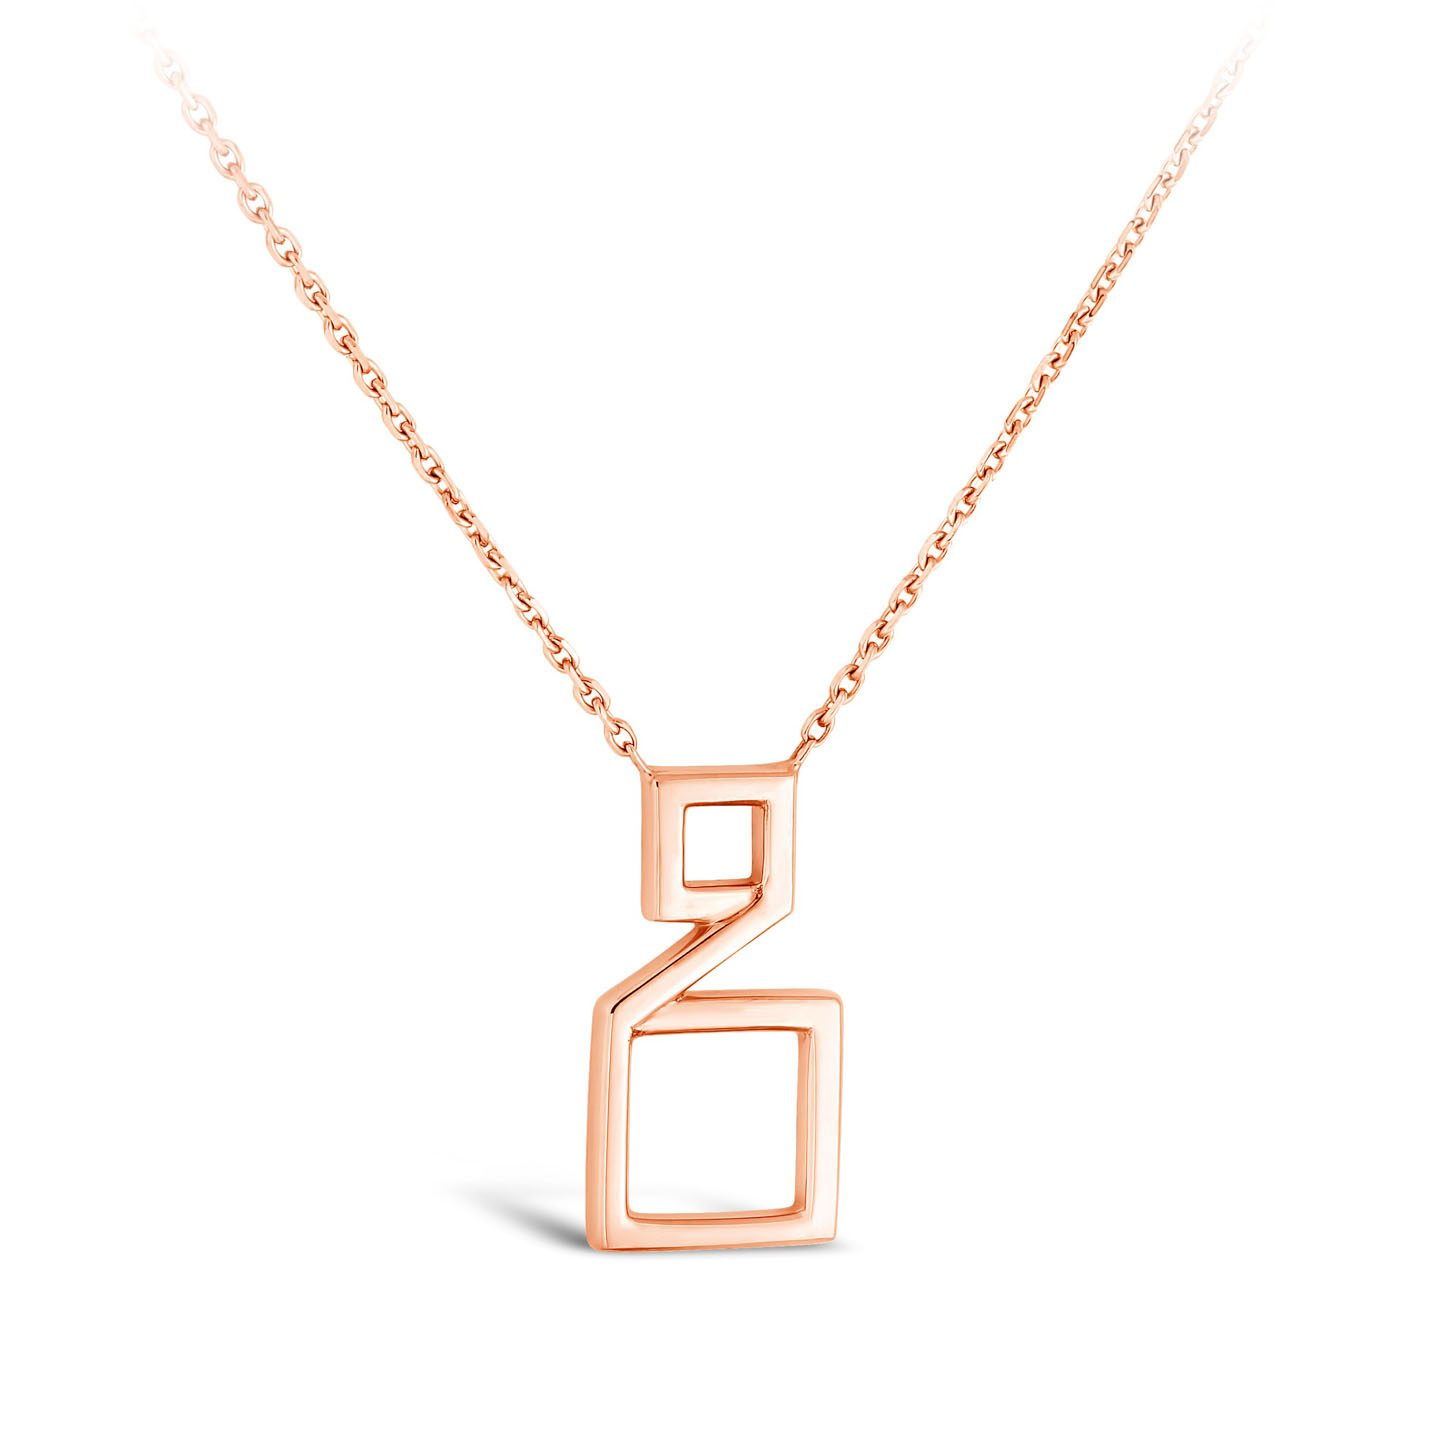 Collier Les carres - Or rose